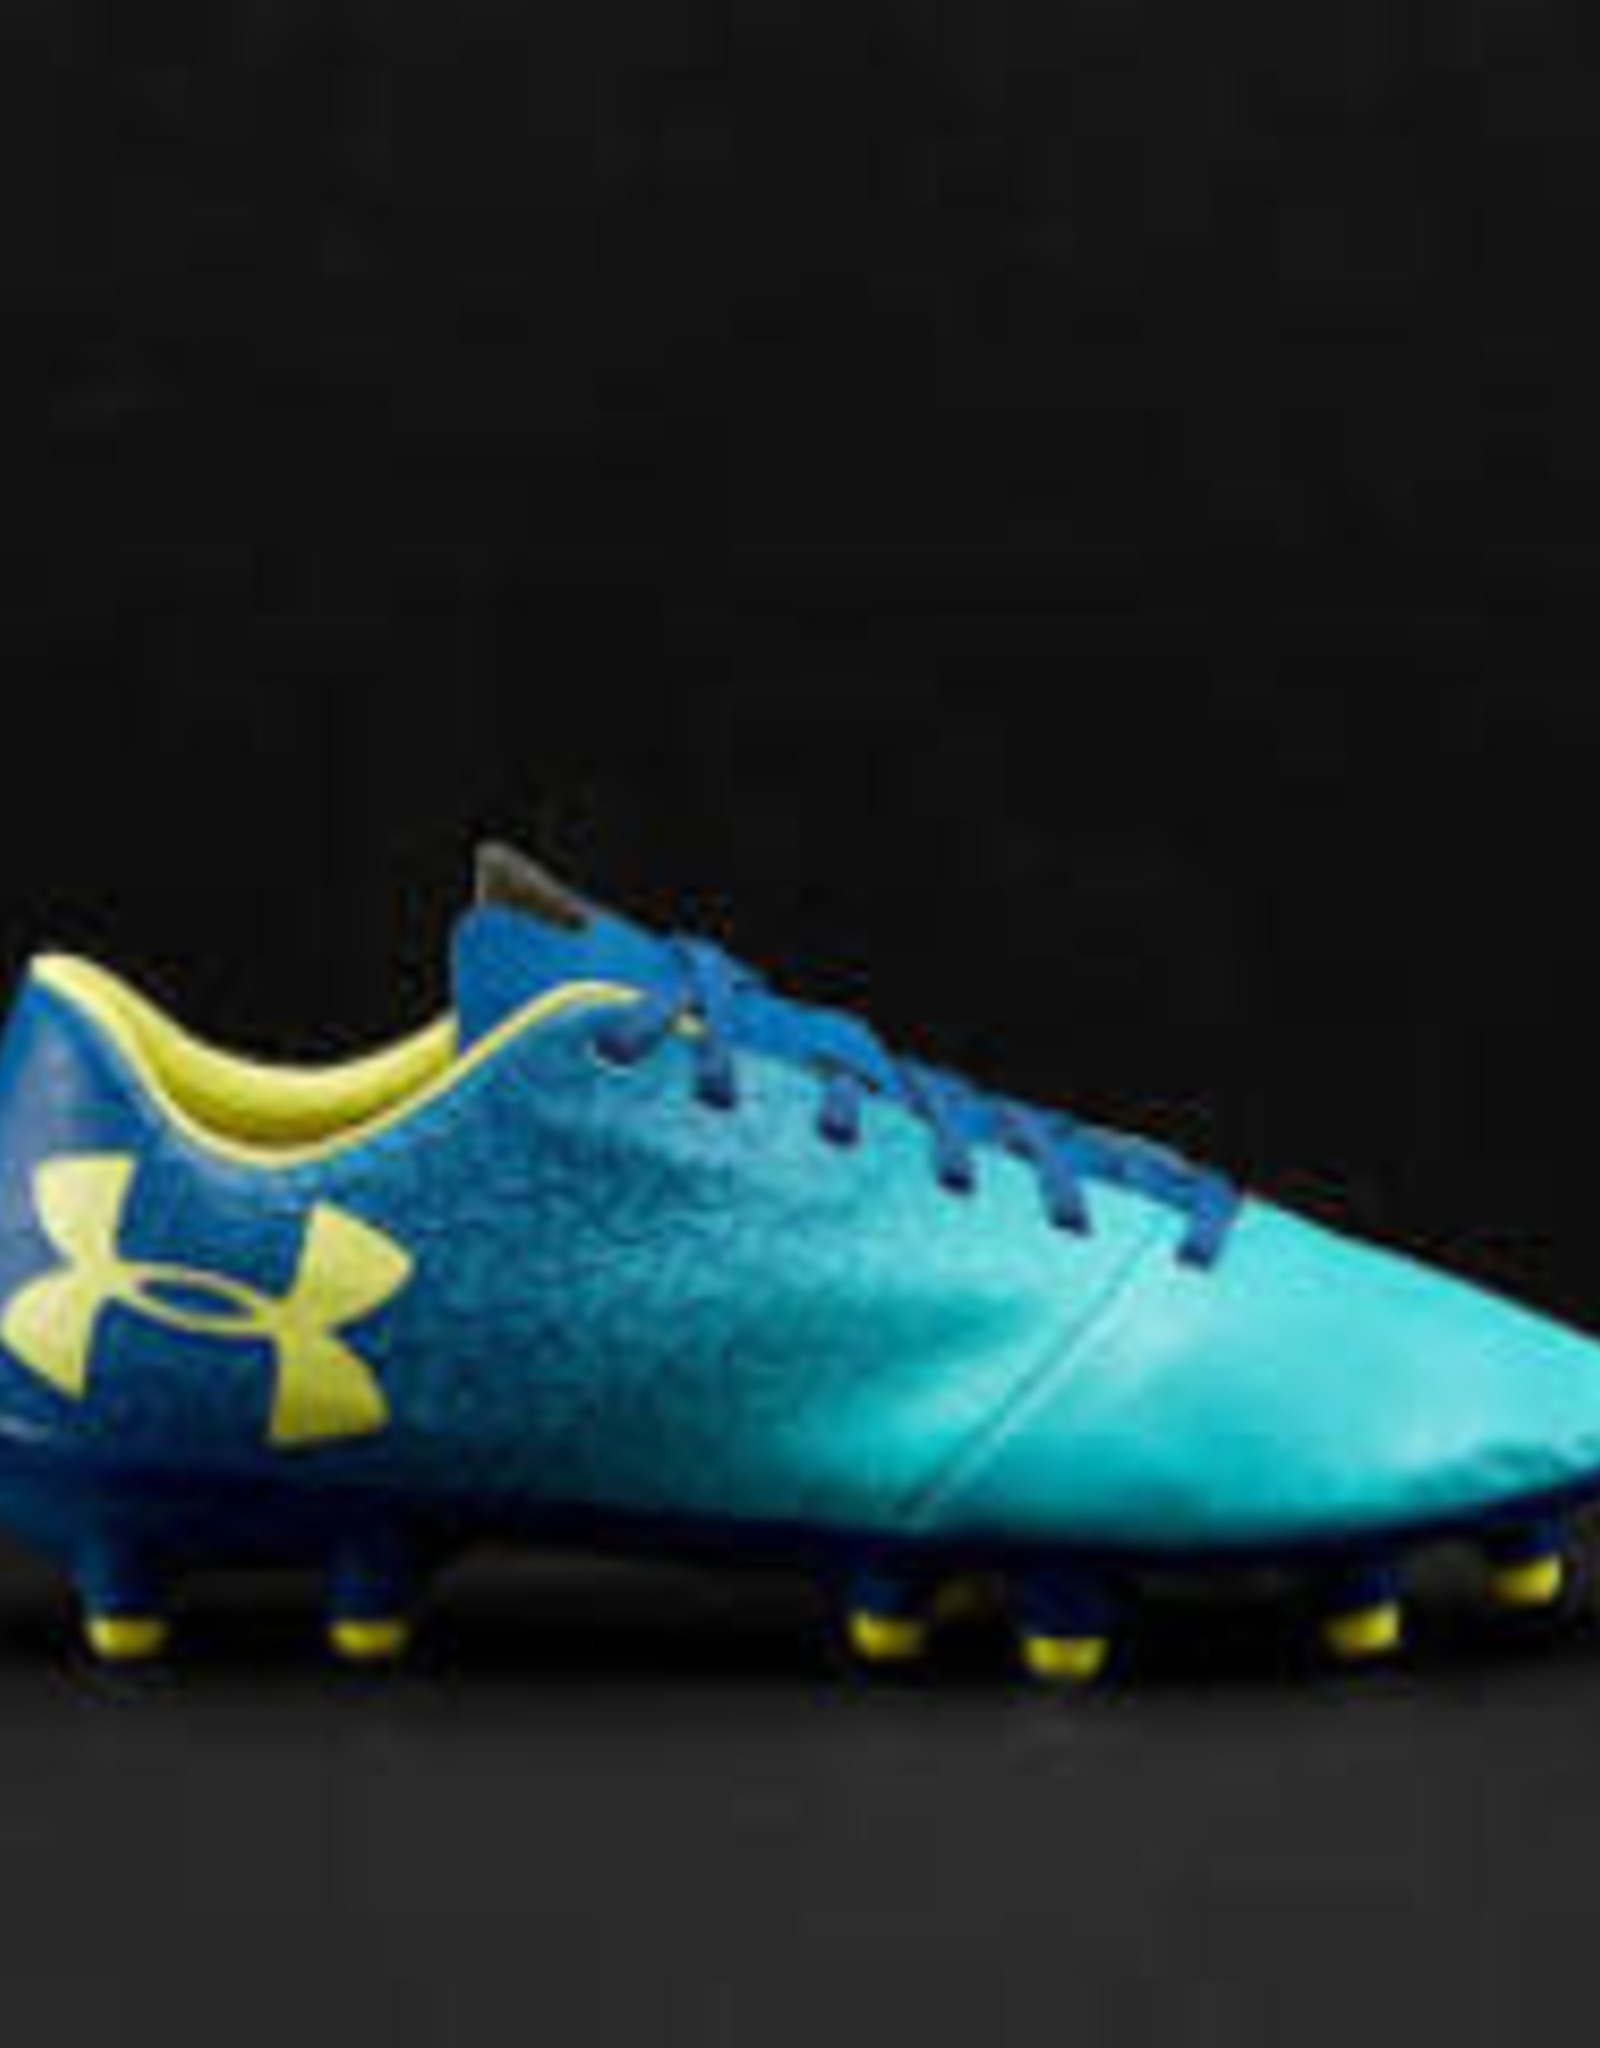 Under Armour UA Soulier Magnetico(7) TF Blu/YL